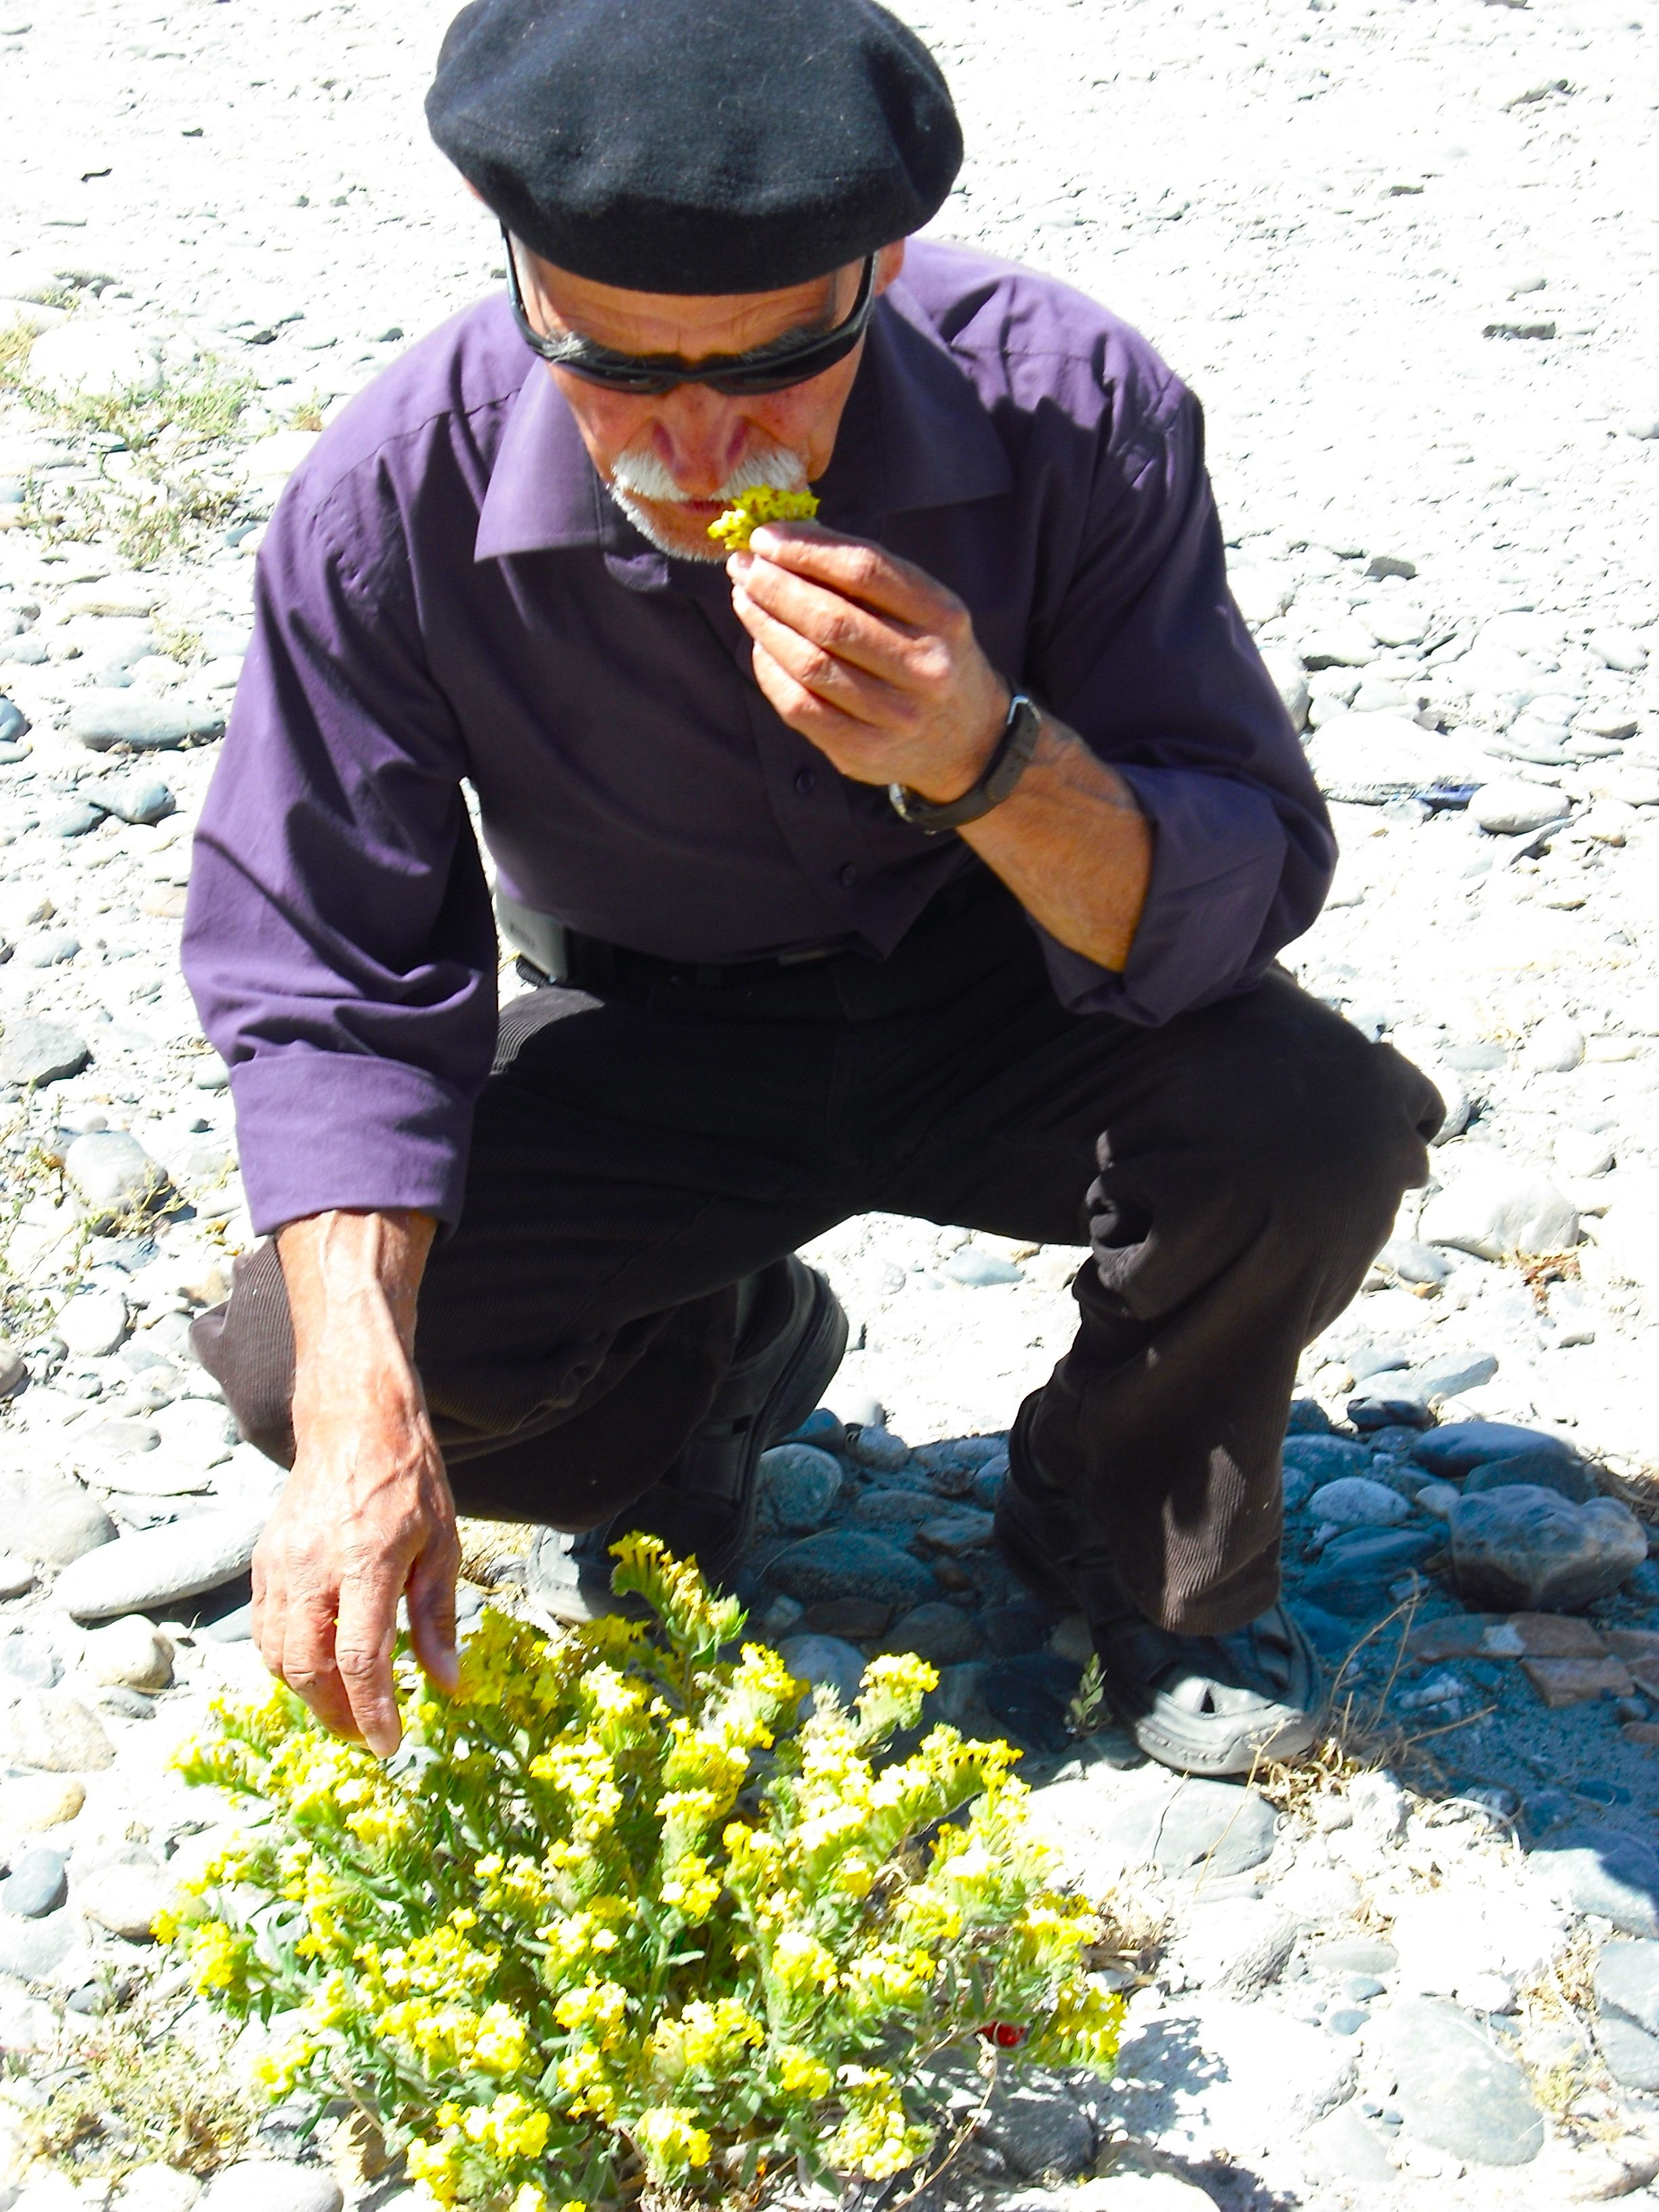 Dr. Shirinbek examines wild herbs he finds growing on the side of the road